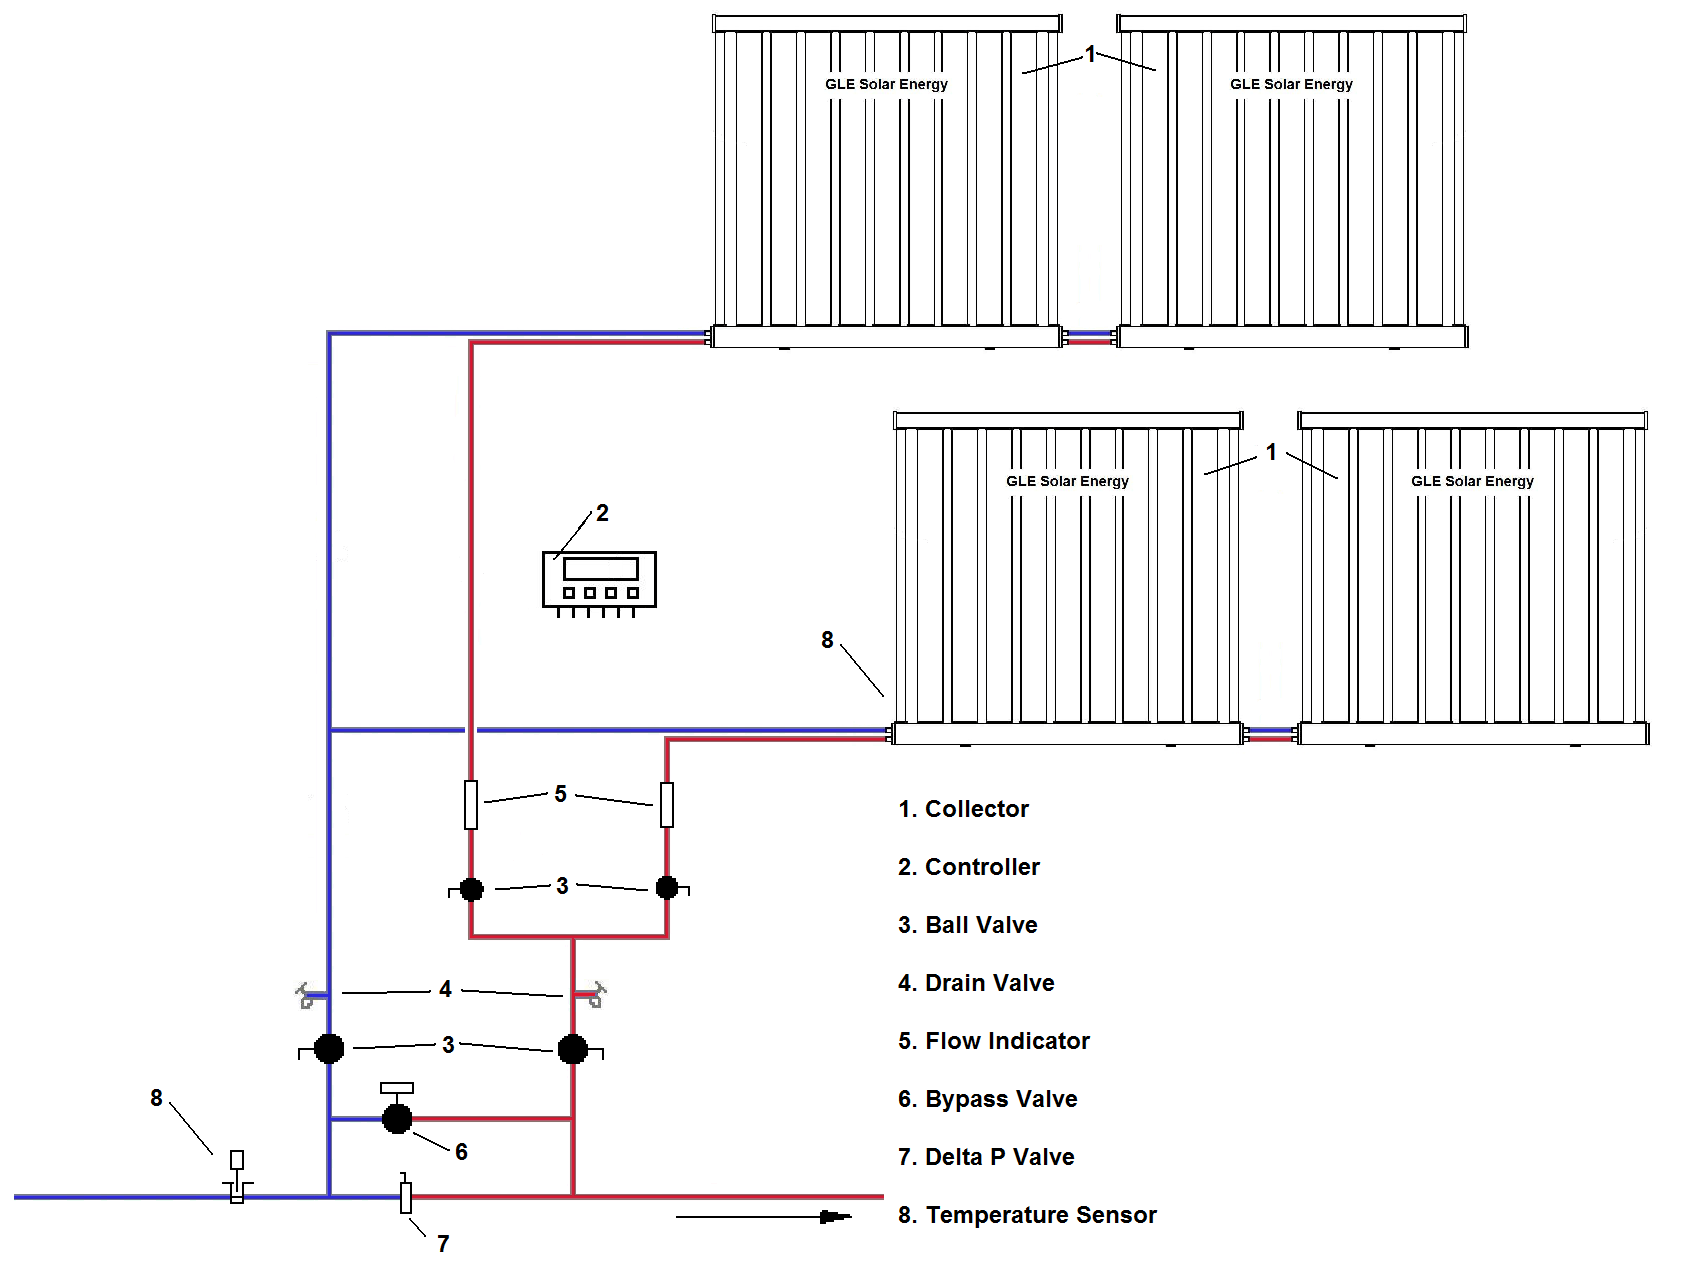 Wiring Diagram For Centurion 3000 Converter Centurion 3000